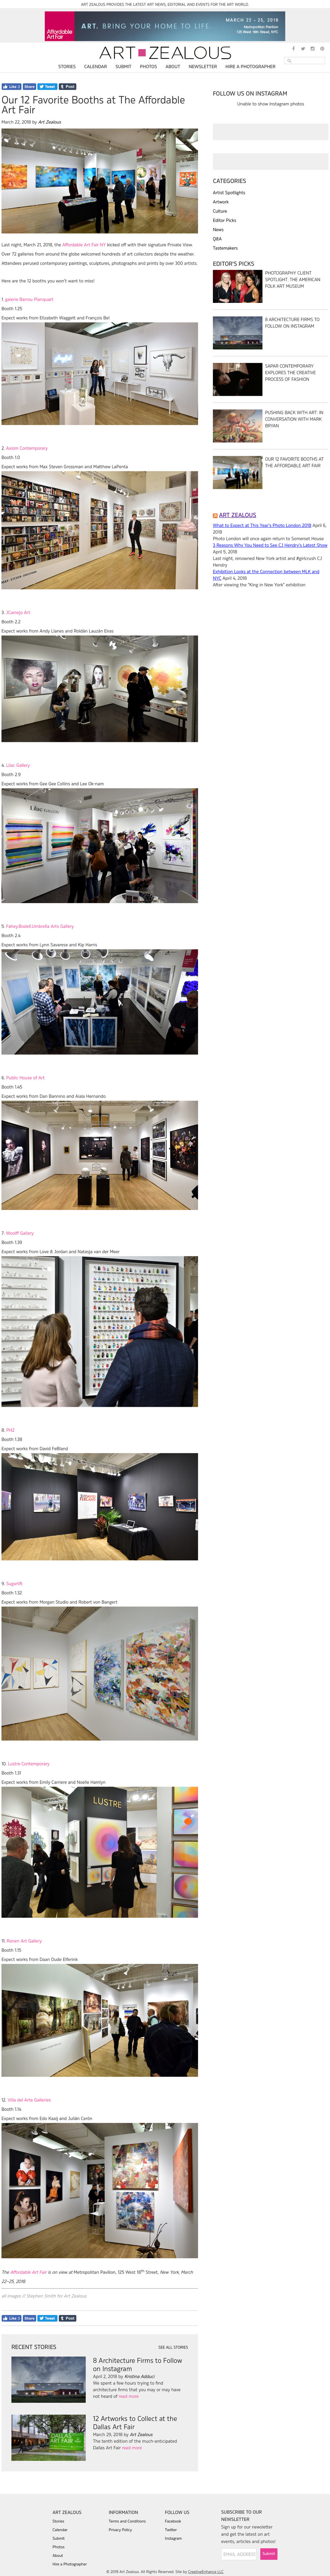 Our-12-Favorite-Booths-at-The-A-ordable-Art-Fair.jpg